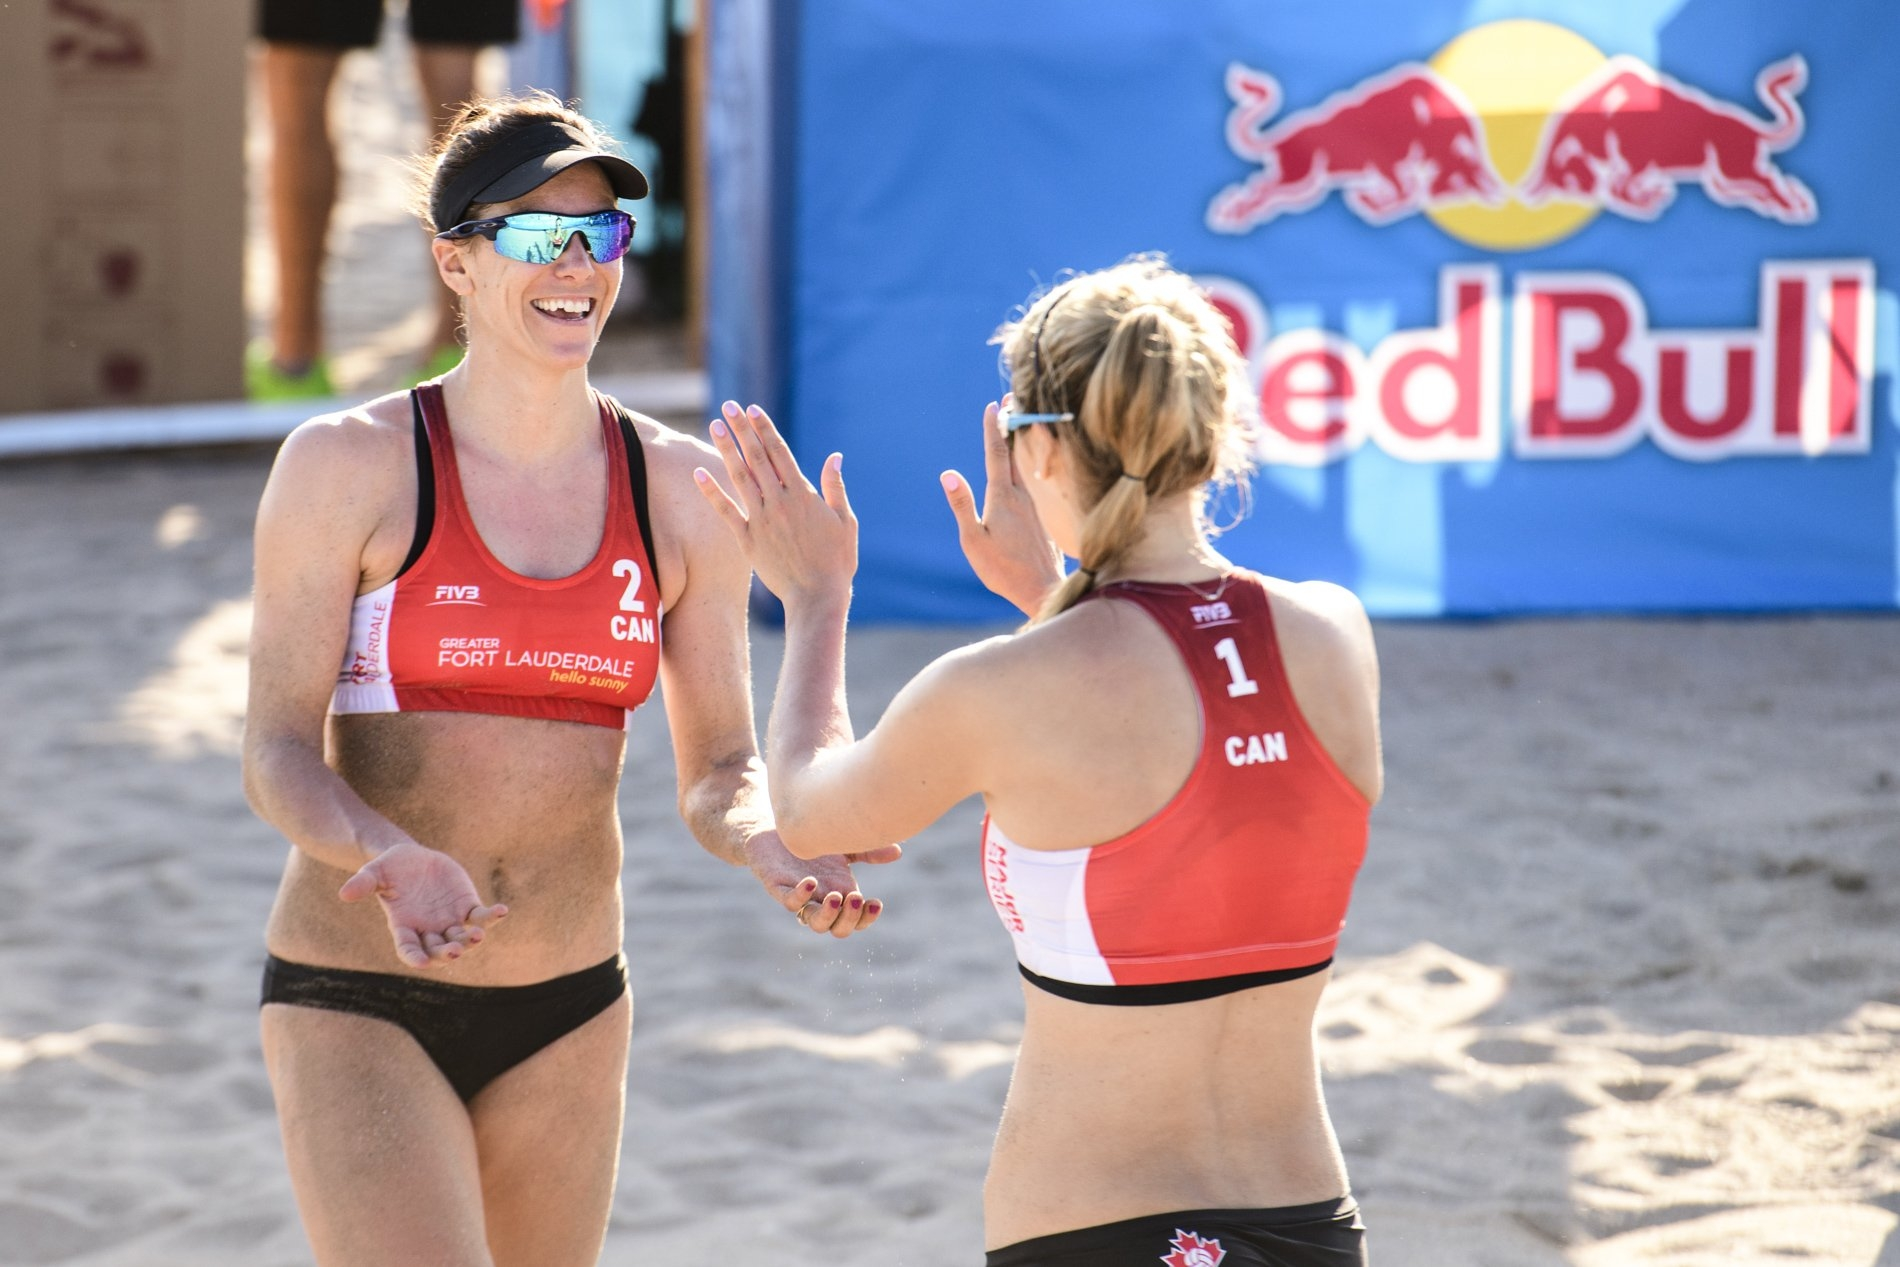 Jamie Broder and Taylor Pischke are qualified to the Fort Lauderdale Major main draw